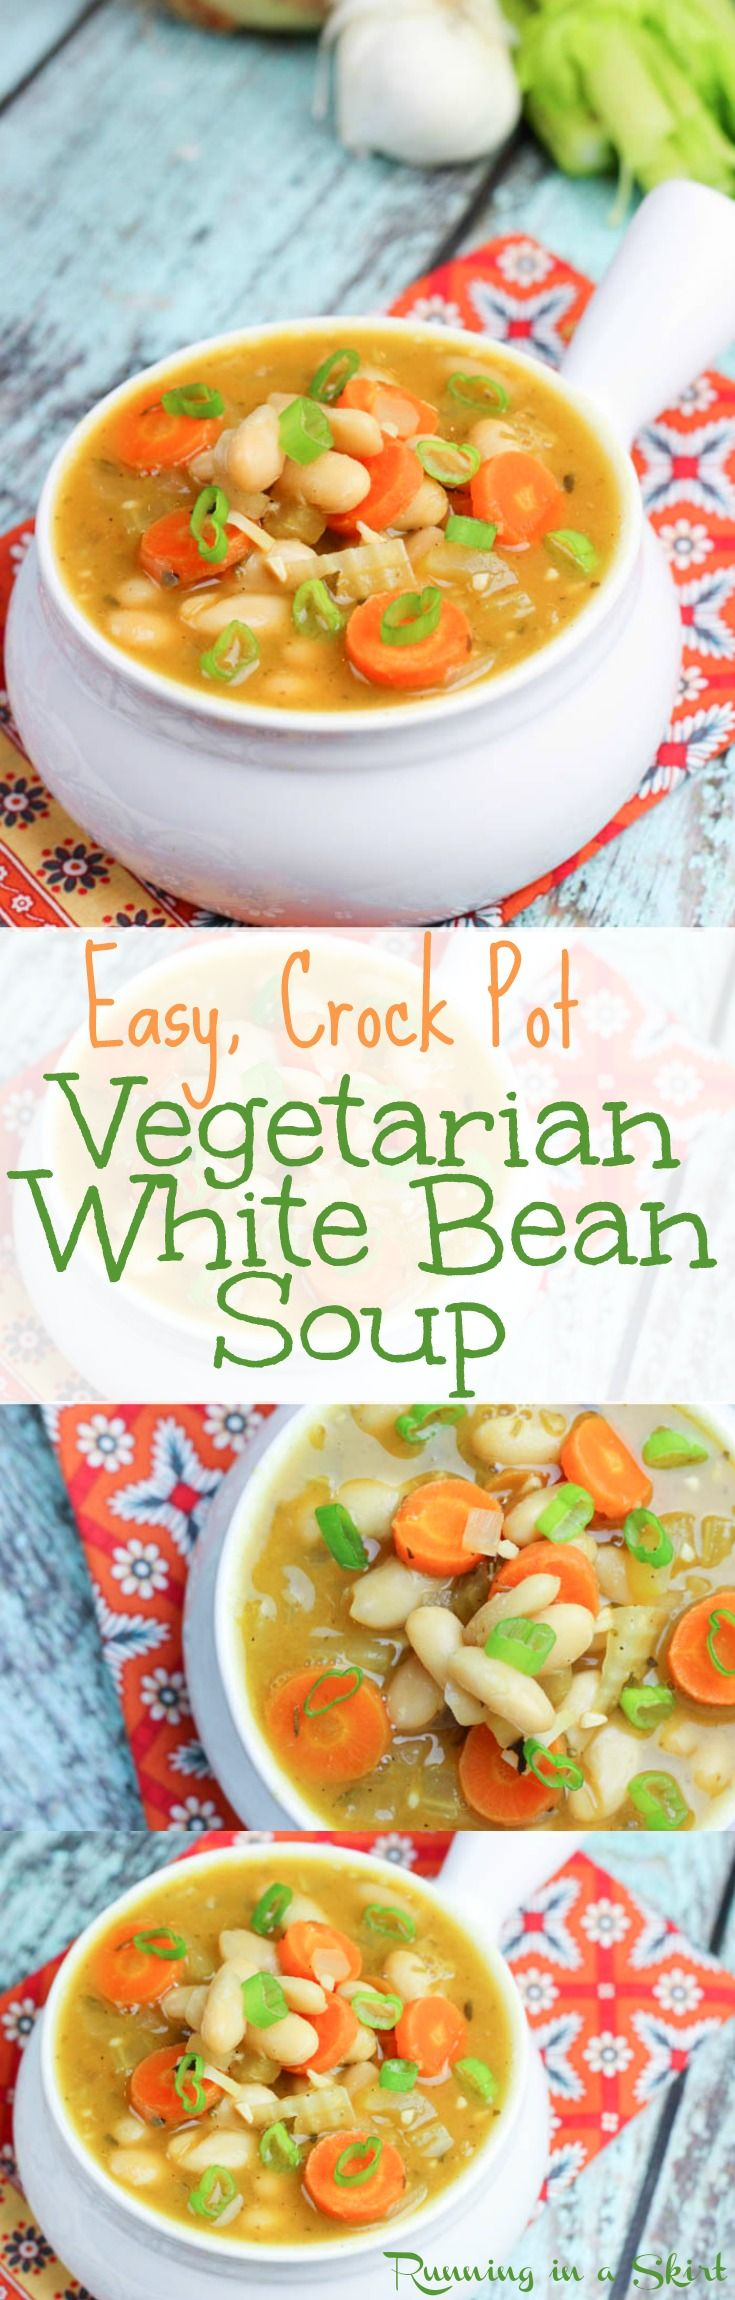 Crock Pot Vegetarian White Bean Soup recipe - full of flavor and so tasty. This simple open and dump clean eating vegan soup and simmers all day in the slow cooker. Carrots and spring onions make this dish vibrant for any month of the year! Simple, healthy and easy-- perfect for dinners or lunches. Uses vegetable stock and is vegan